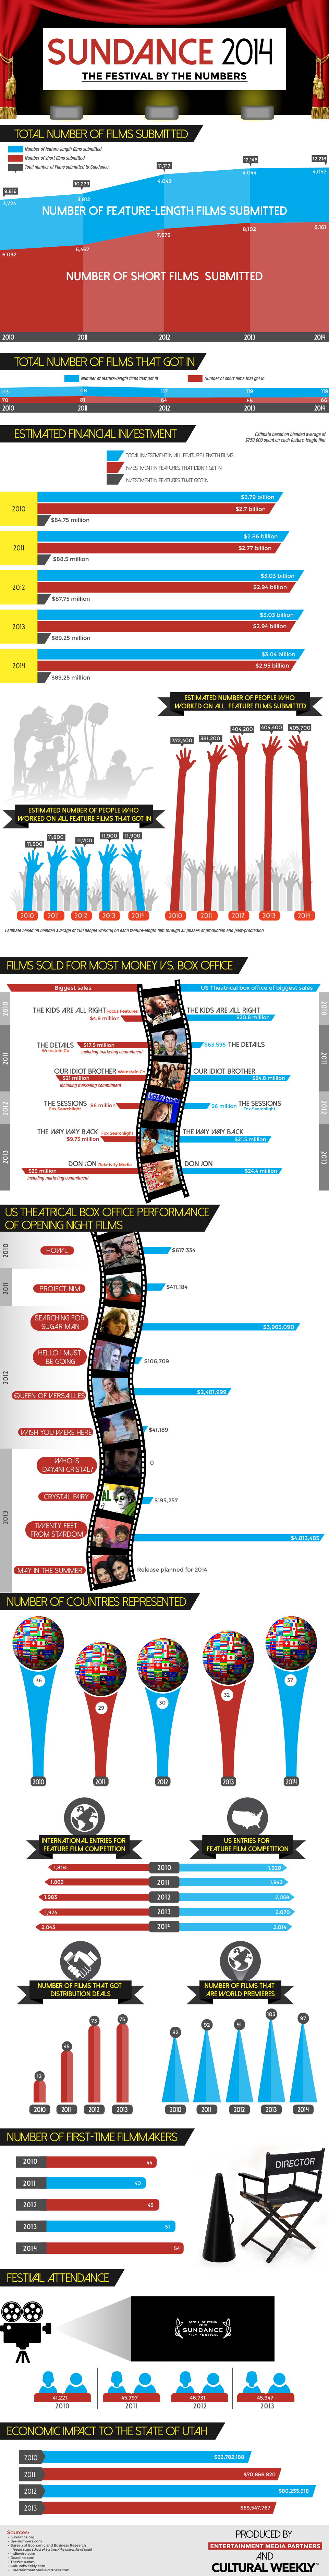 Sundance 2014 Infographic produced by Entertainment Media Partners and Cultural Weekly.